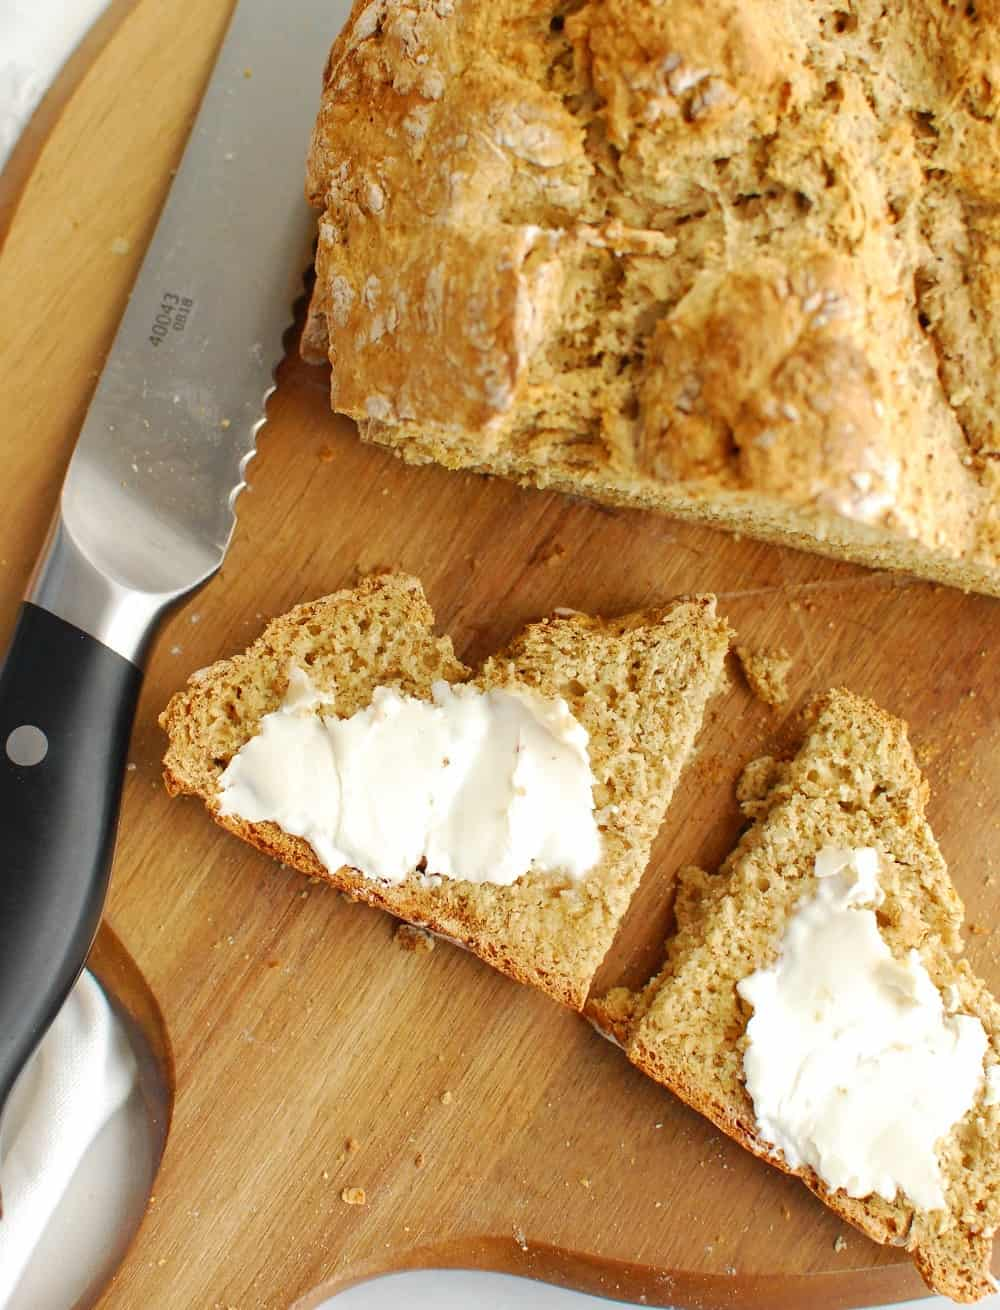 A slice of Irish soda bread with dairy free butter slathered on top.